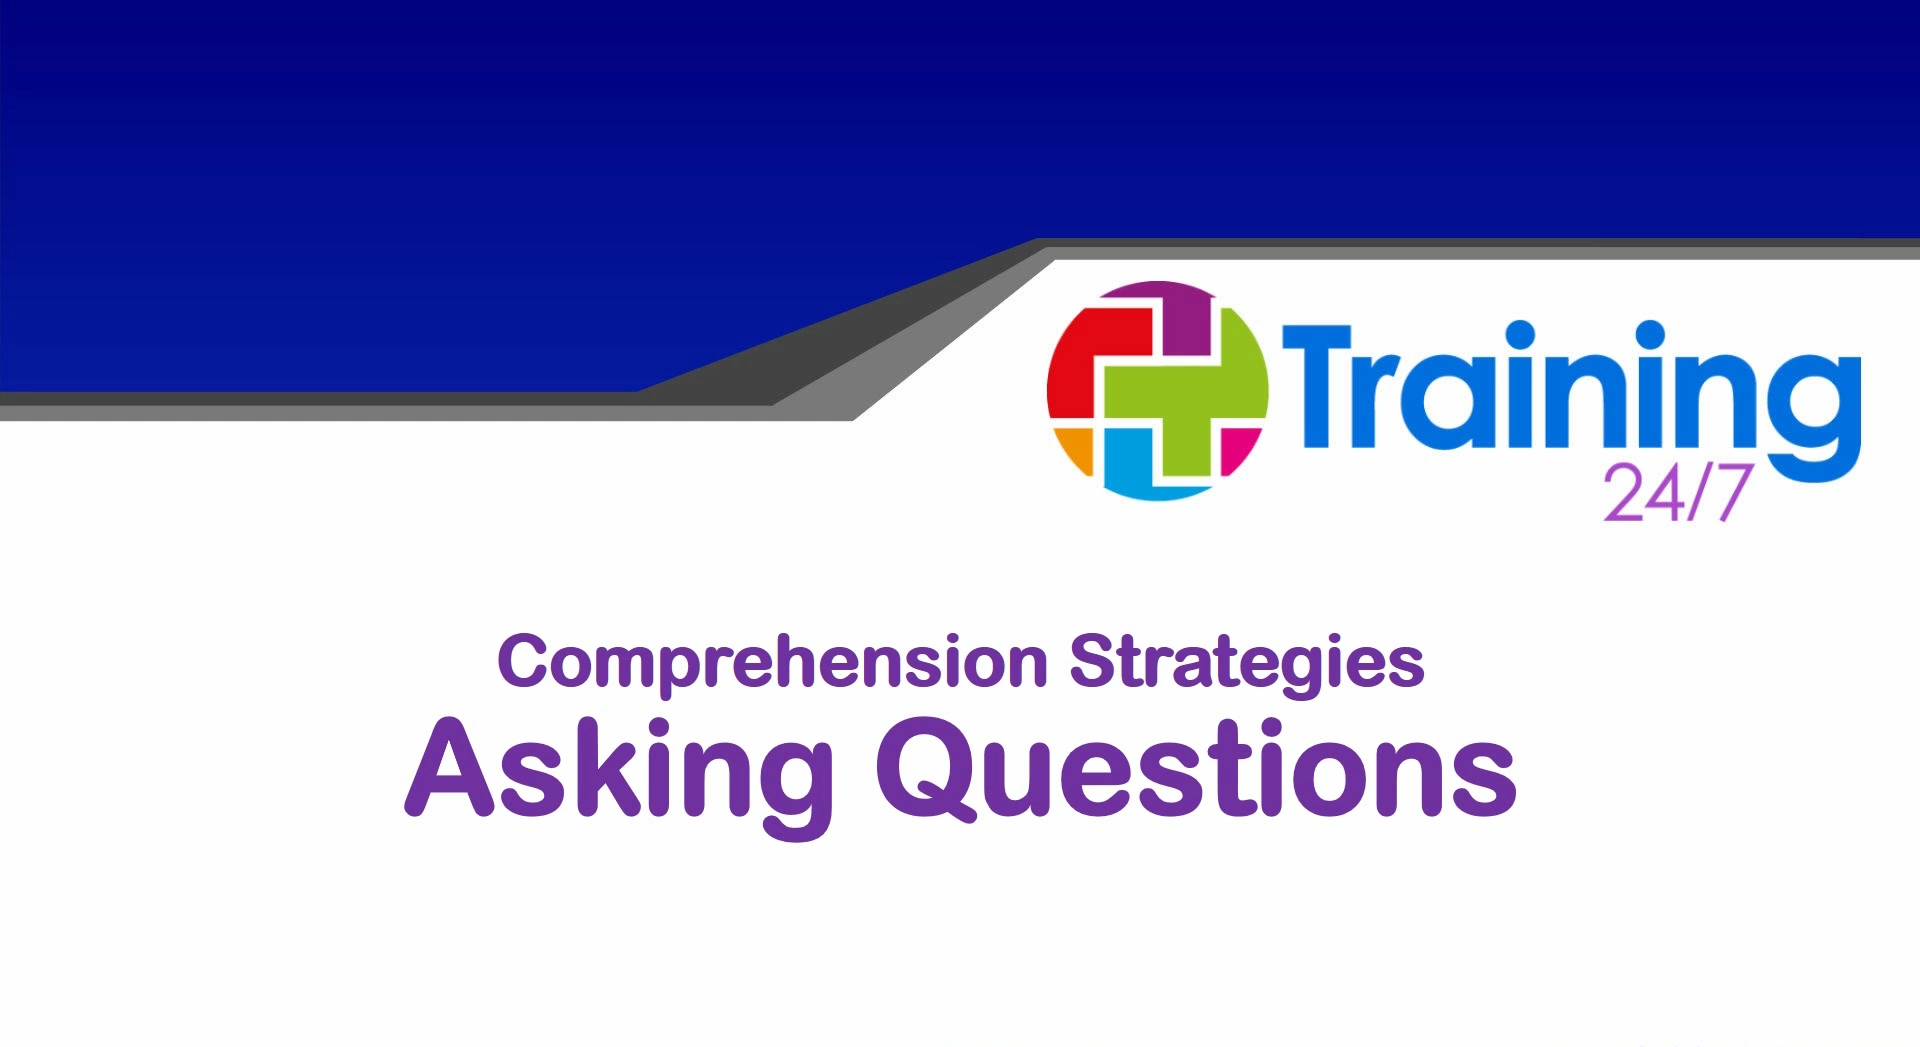 Comprehension Strategies 2 Asking Questions 30 Day Access